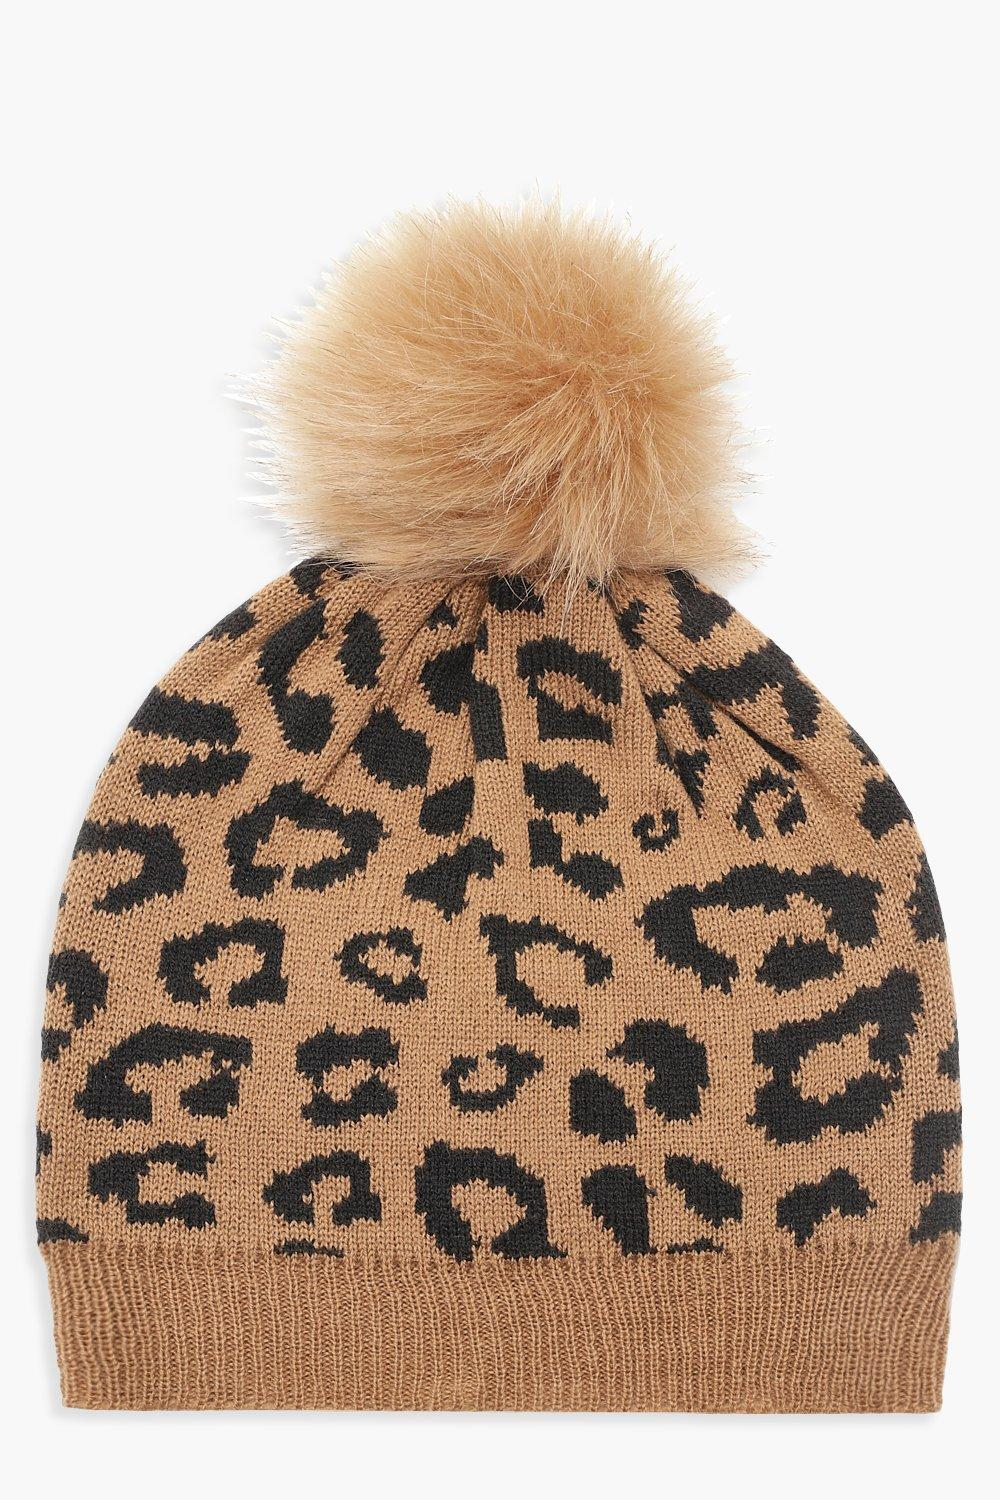 be35f63d95a Leopard Faux Fur Pom Beanie. Hover to zoom